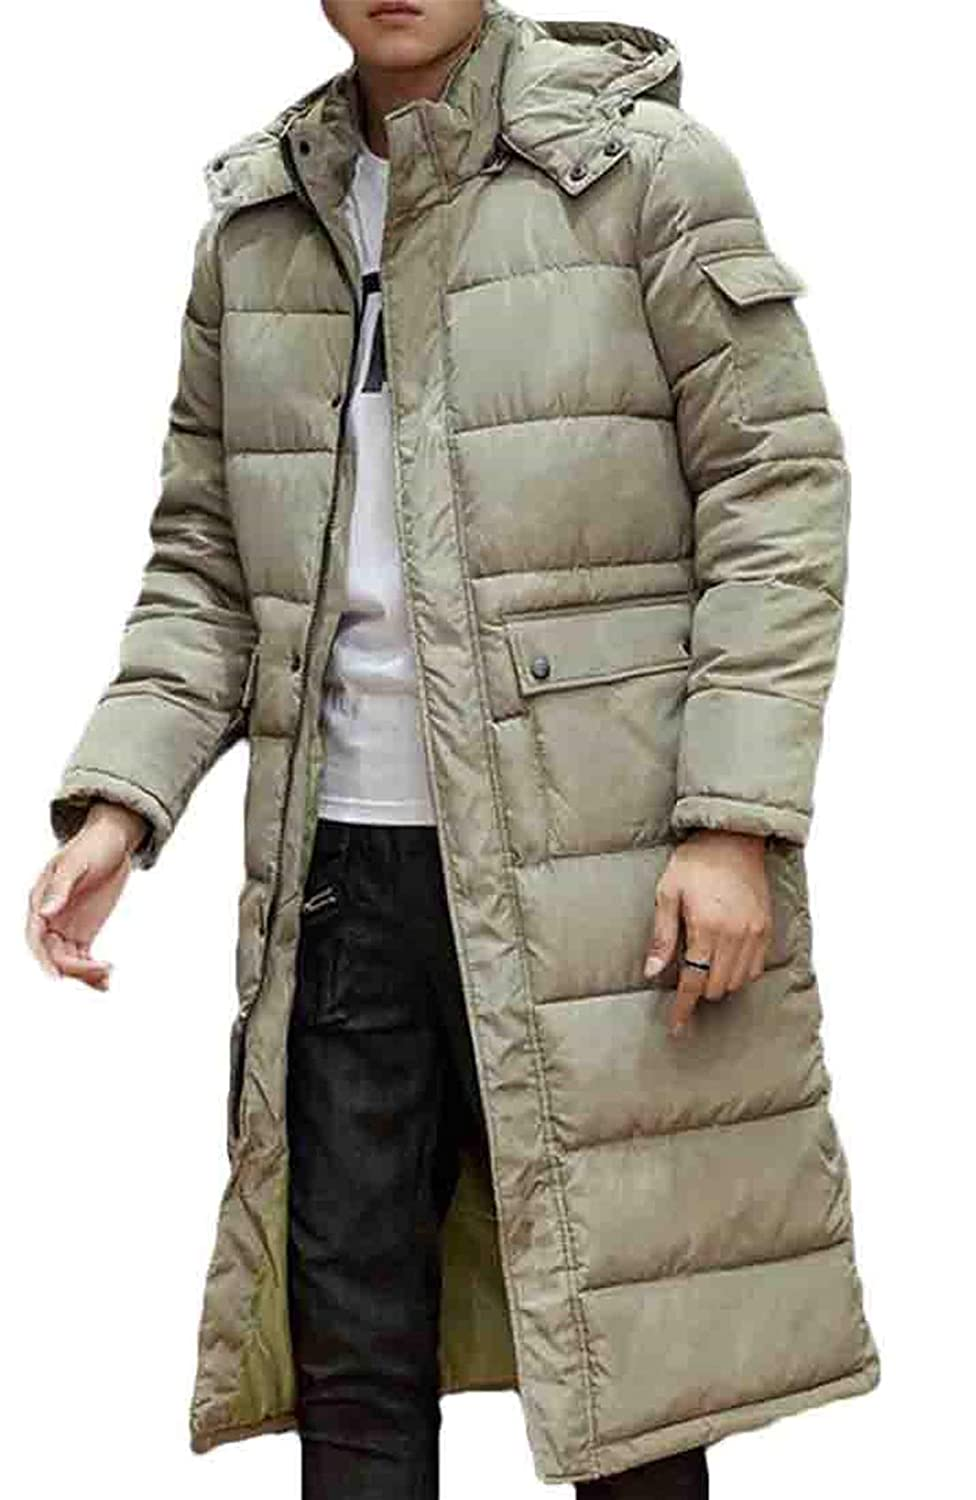 Hilization Mens Winter Plain Thicken Zip-Up Cotton Casual Hooded Long with Pockets Down Jacket